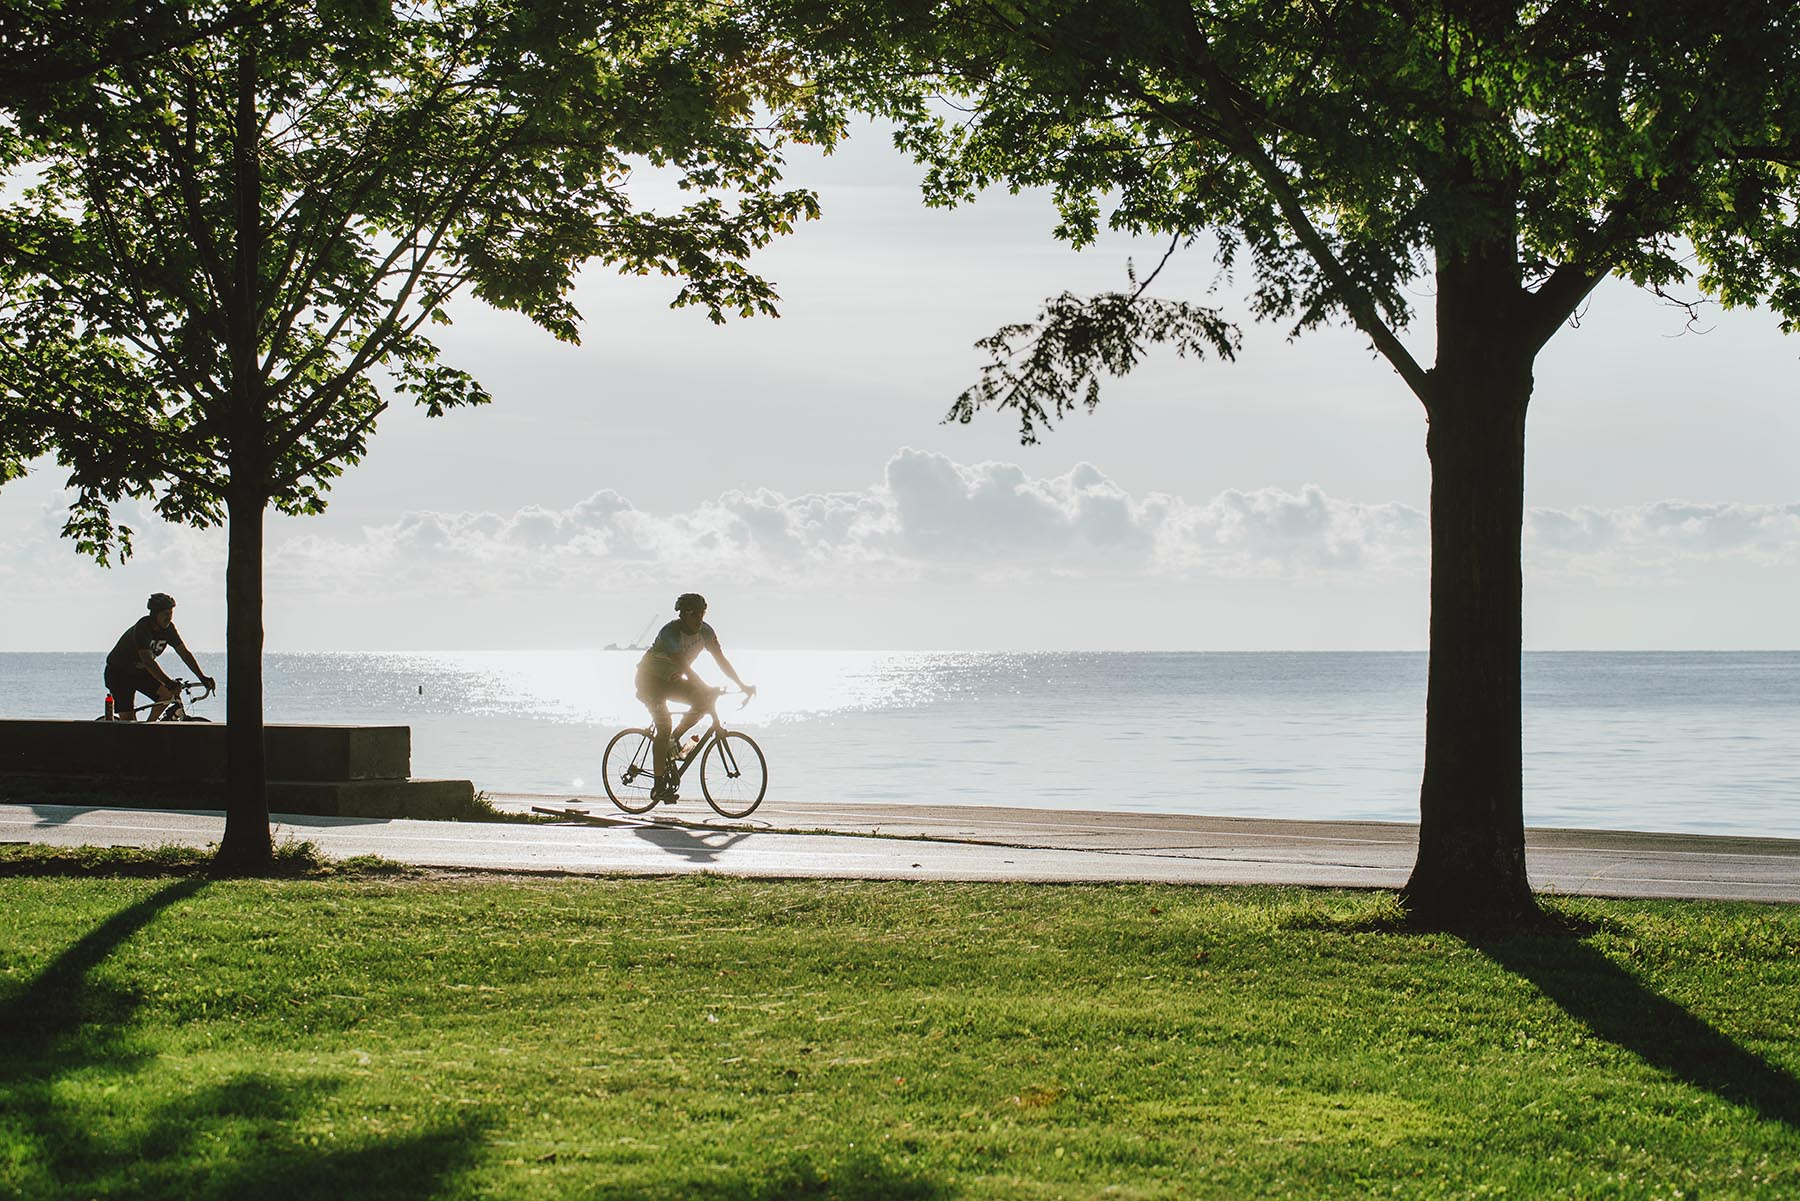 Biking on the Lakeshore Path near 1550 N Clark